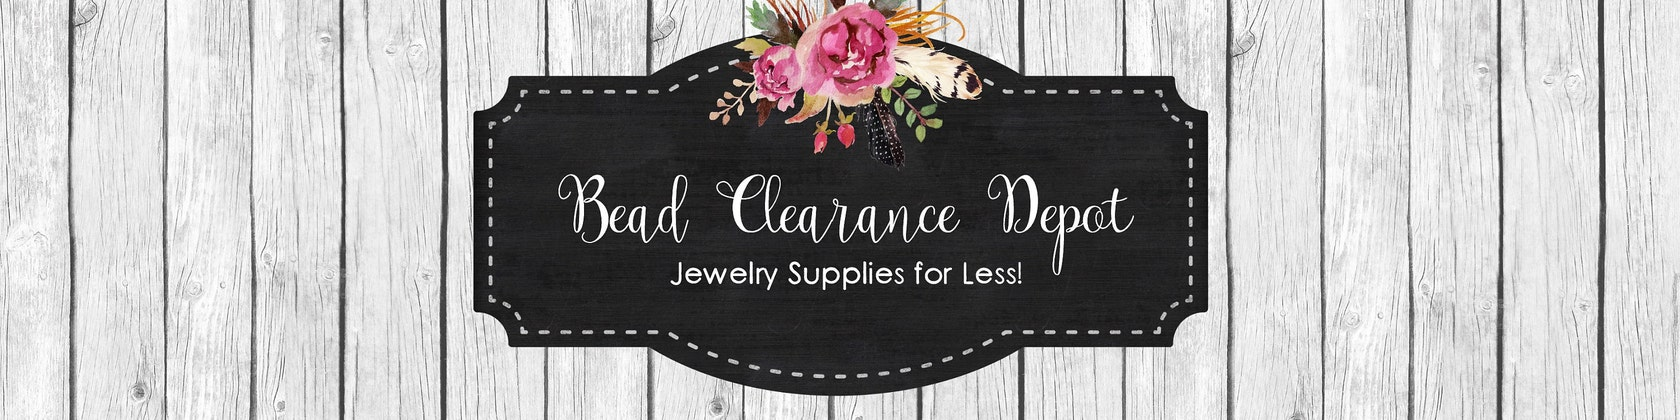 07de40e138b5 Jewelry Supplies for Less by BeadClearanceDepot on Etsy